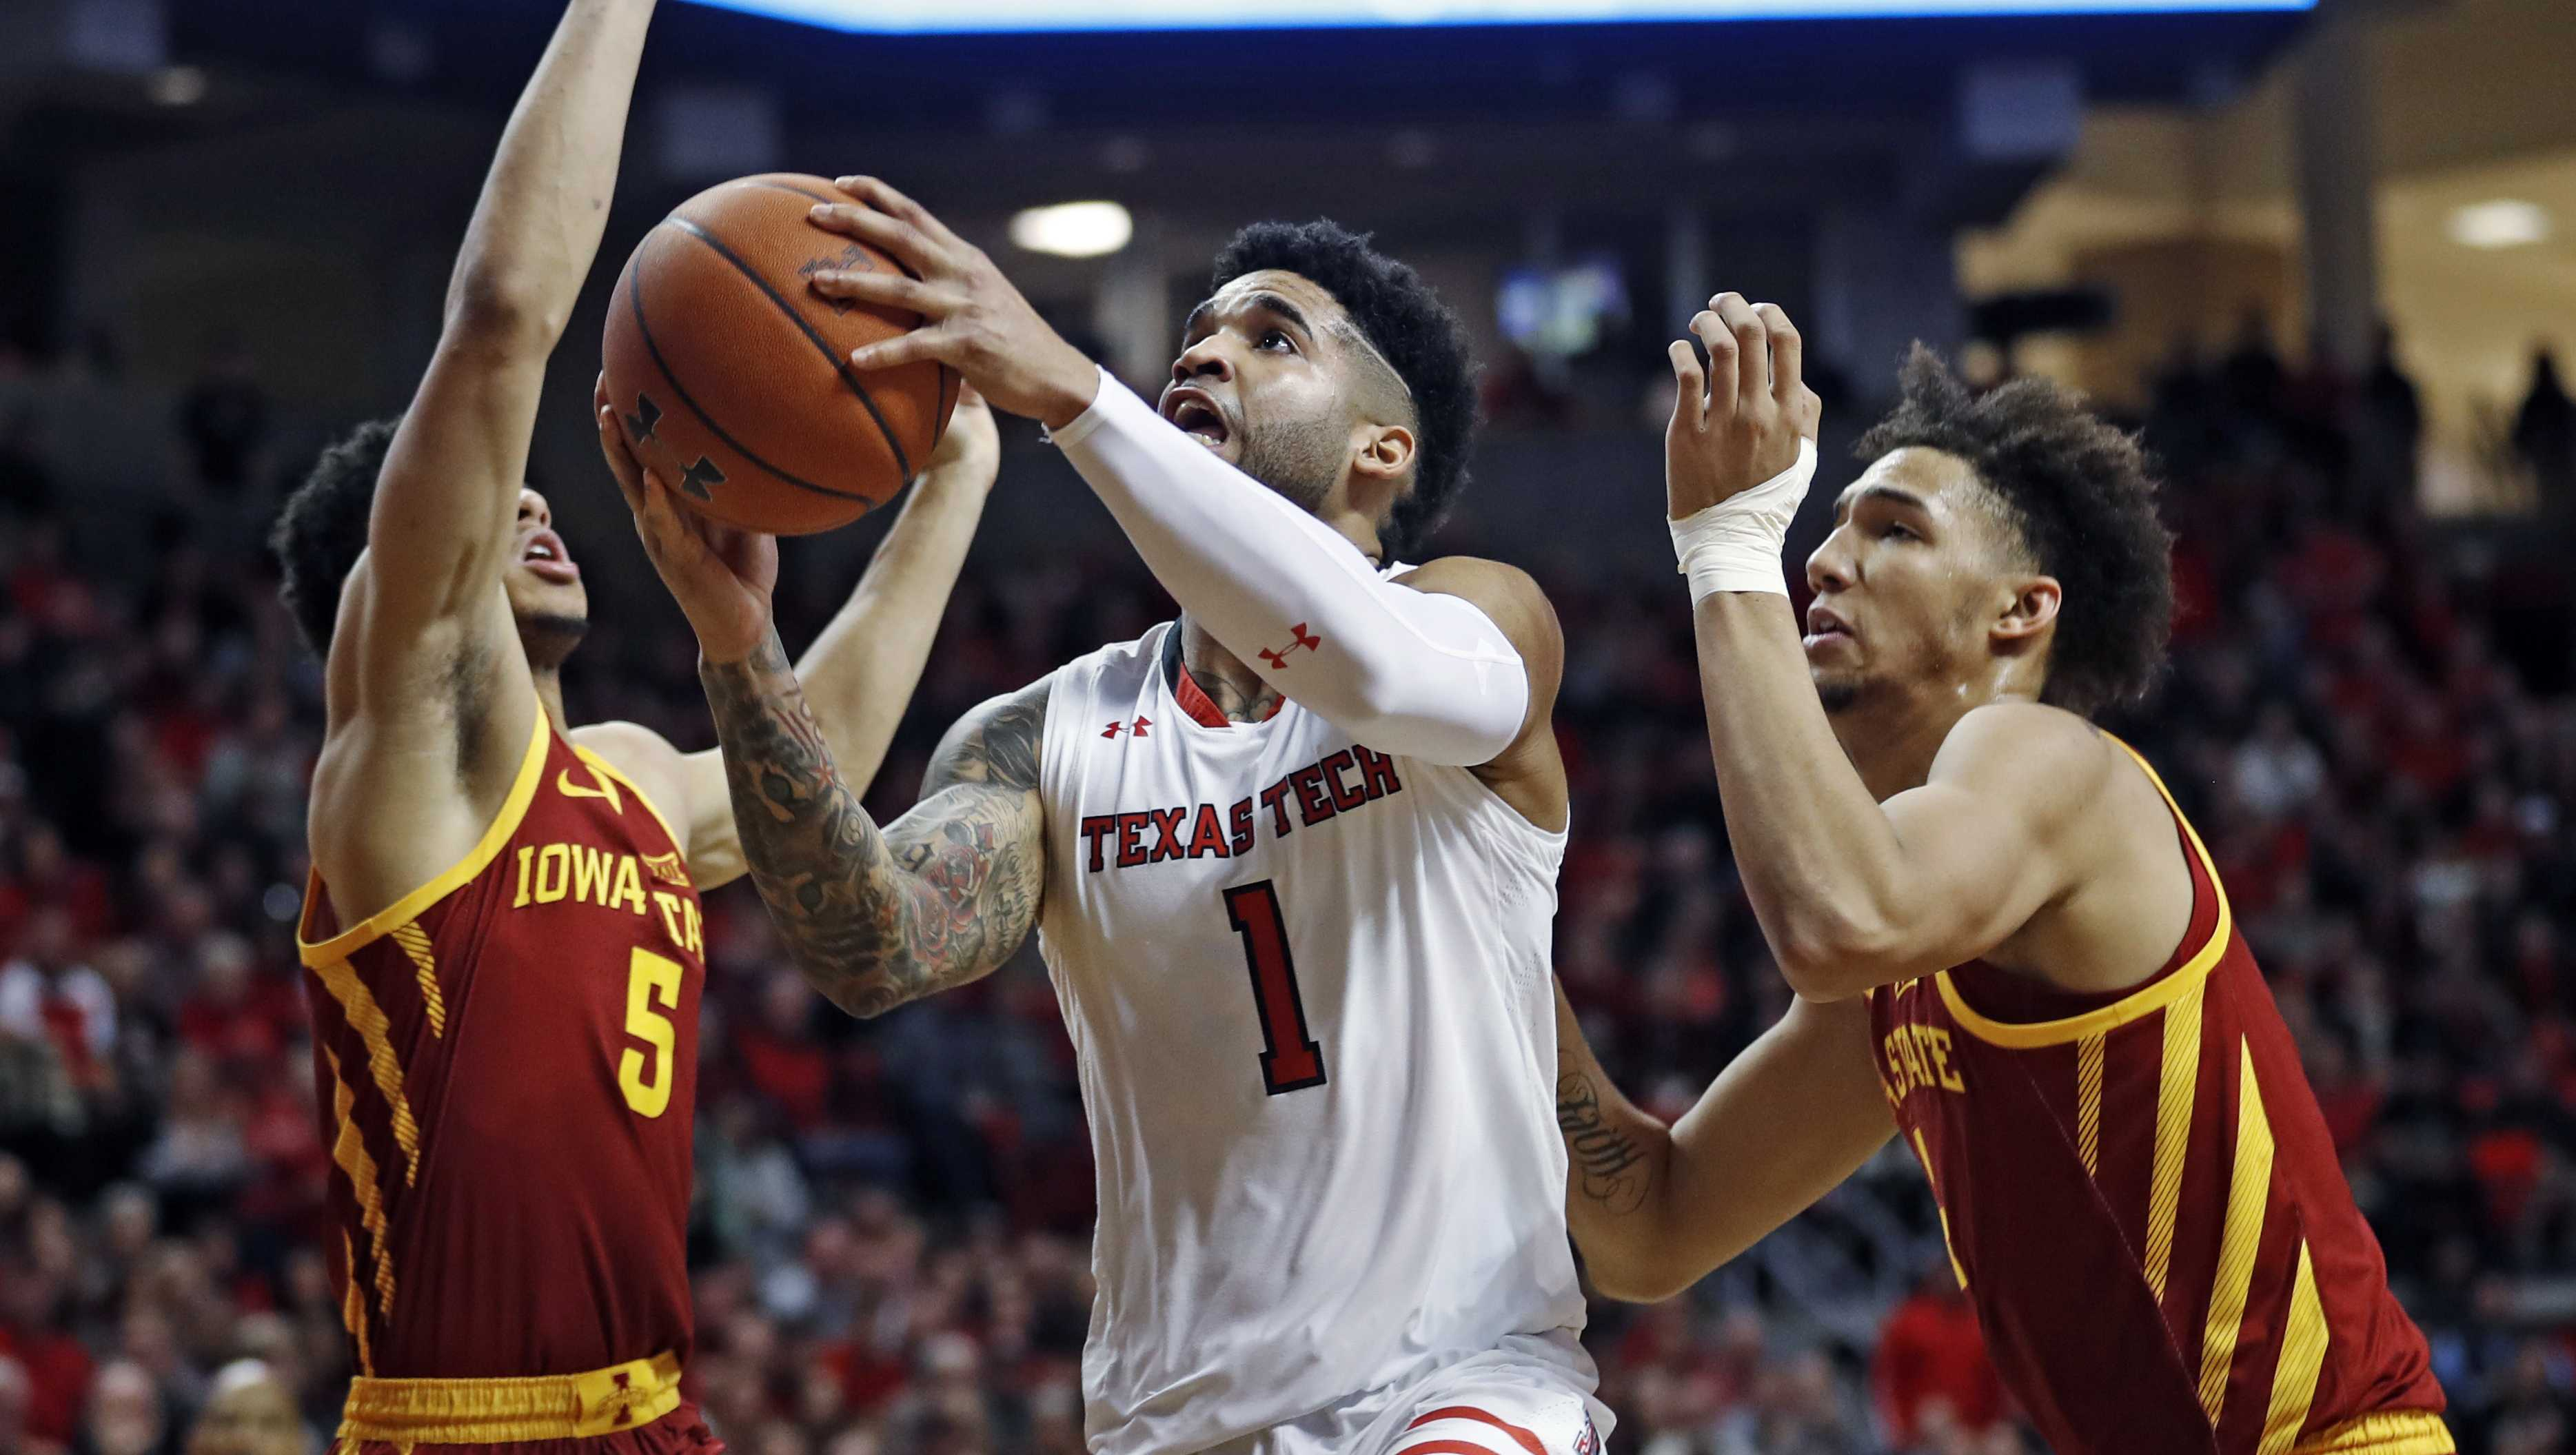 Texas Tech's Brandone Francis (1) goes to the basket between Iowa State's Lindell Wigginton (5) and George Conditt IV during the first half of an NCAA college basketball game Wednesday, Jan. 16, 2019, in Lubbock, Texas. (AP Photo/Brad Tollefson)